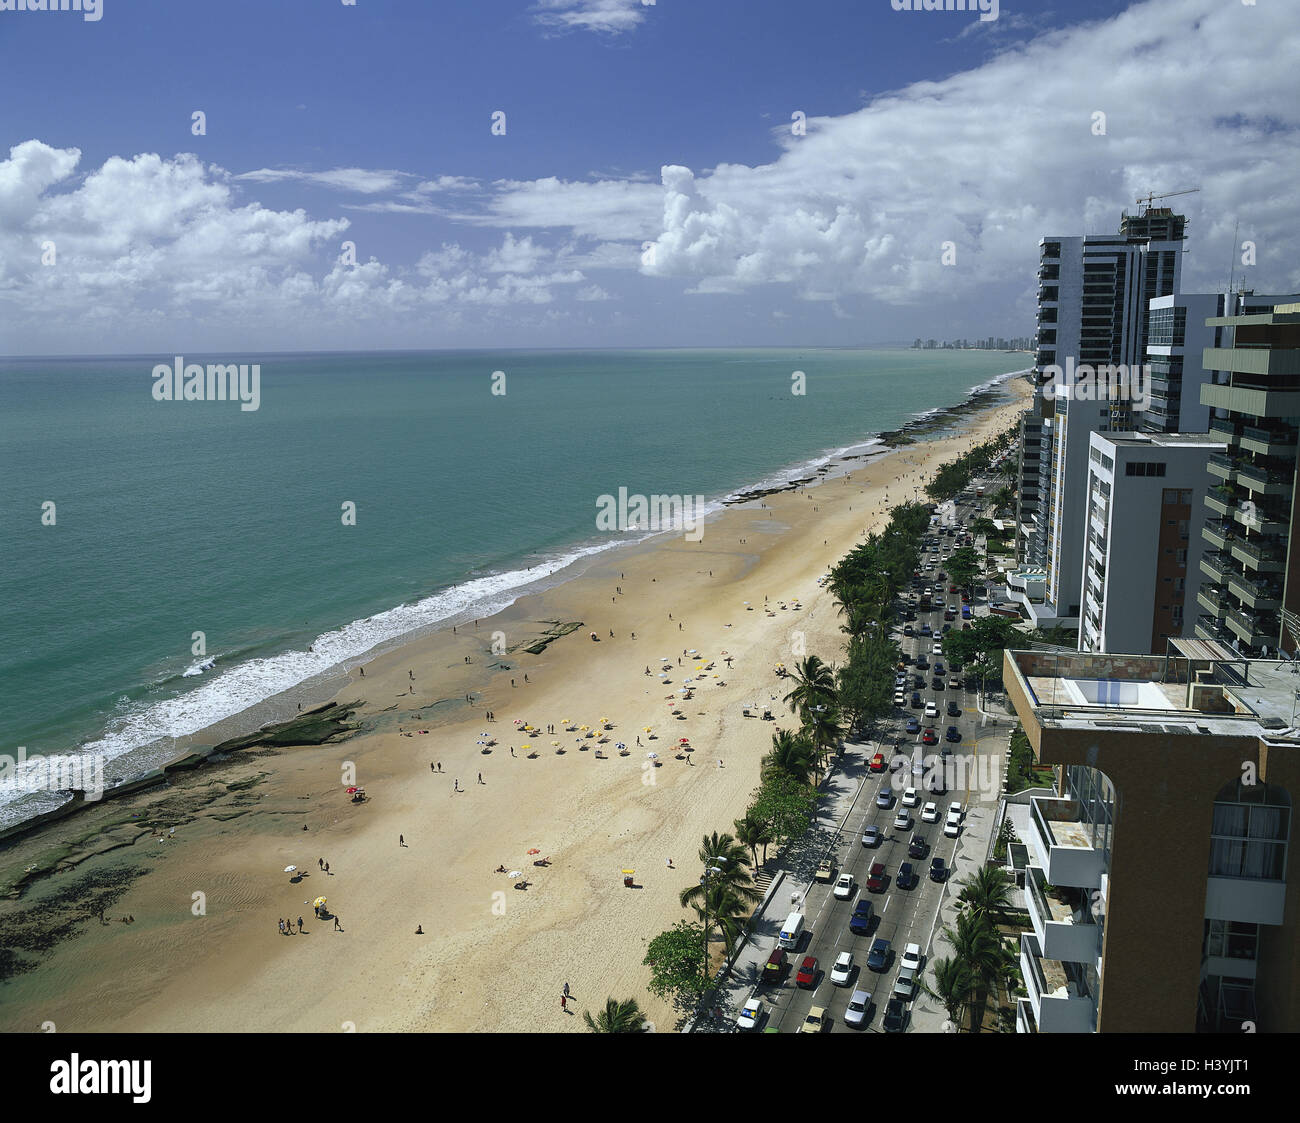 Brazil, province Pernambuco, Recife, suburb Boa Viagem, town view with high rises, sandy beach, sea - Stock Image